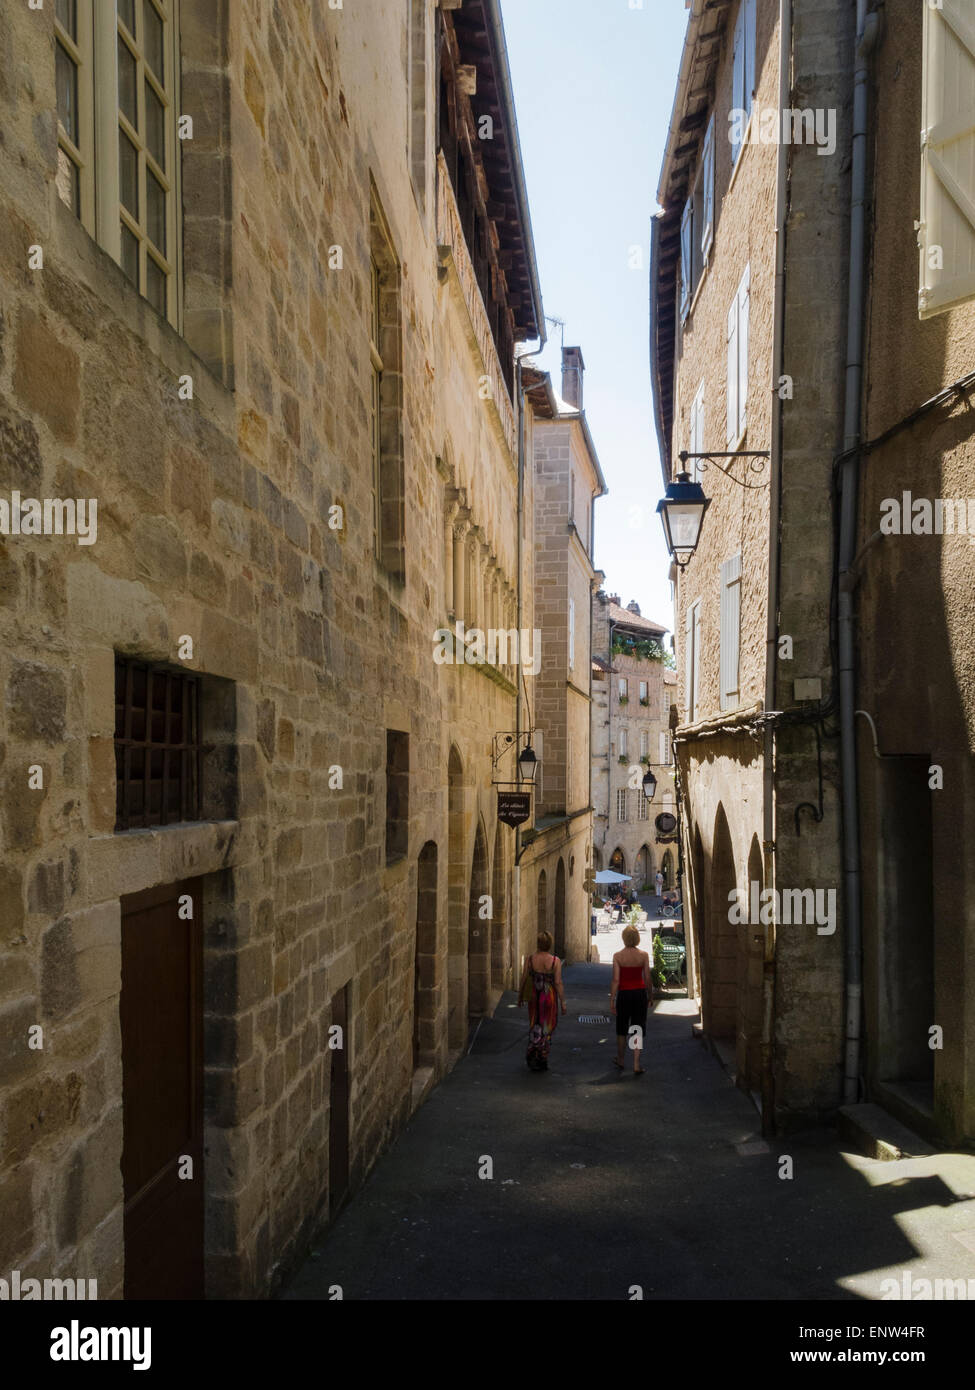 The historical town of Figeac in the Lot region of France is famous for its old merchants' houses with roof - Stock Image